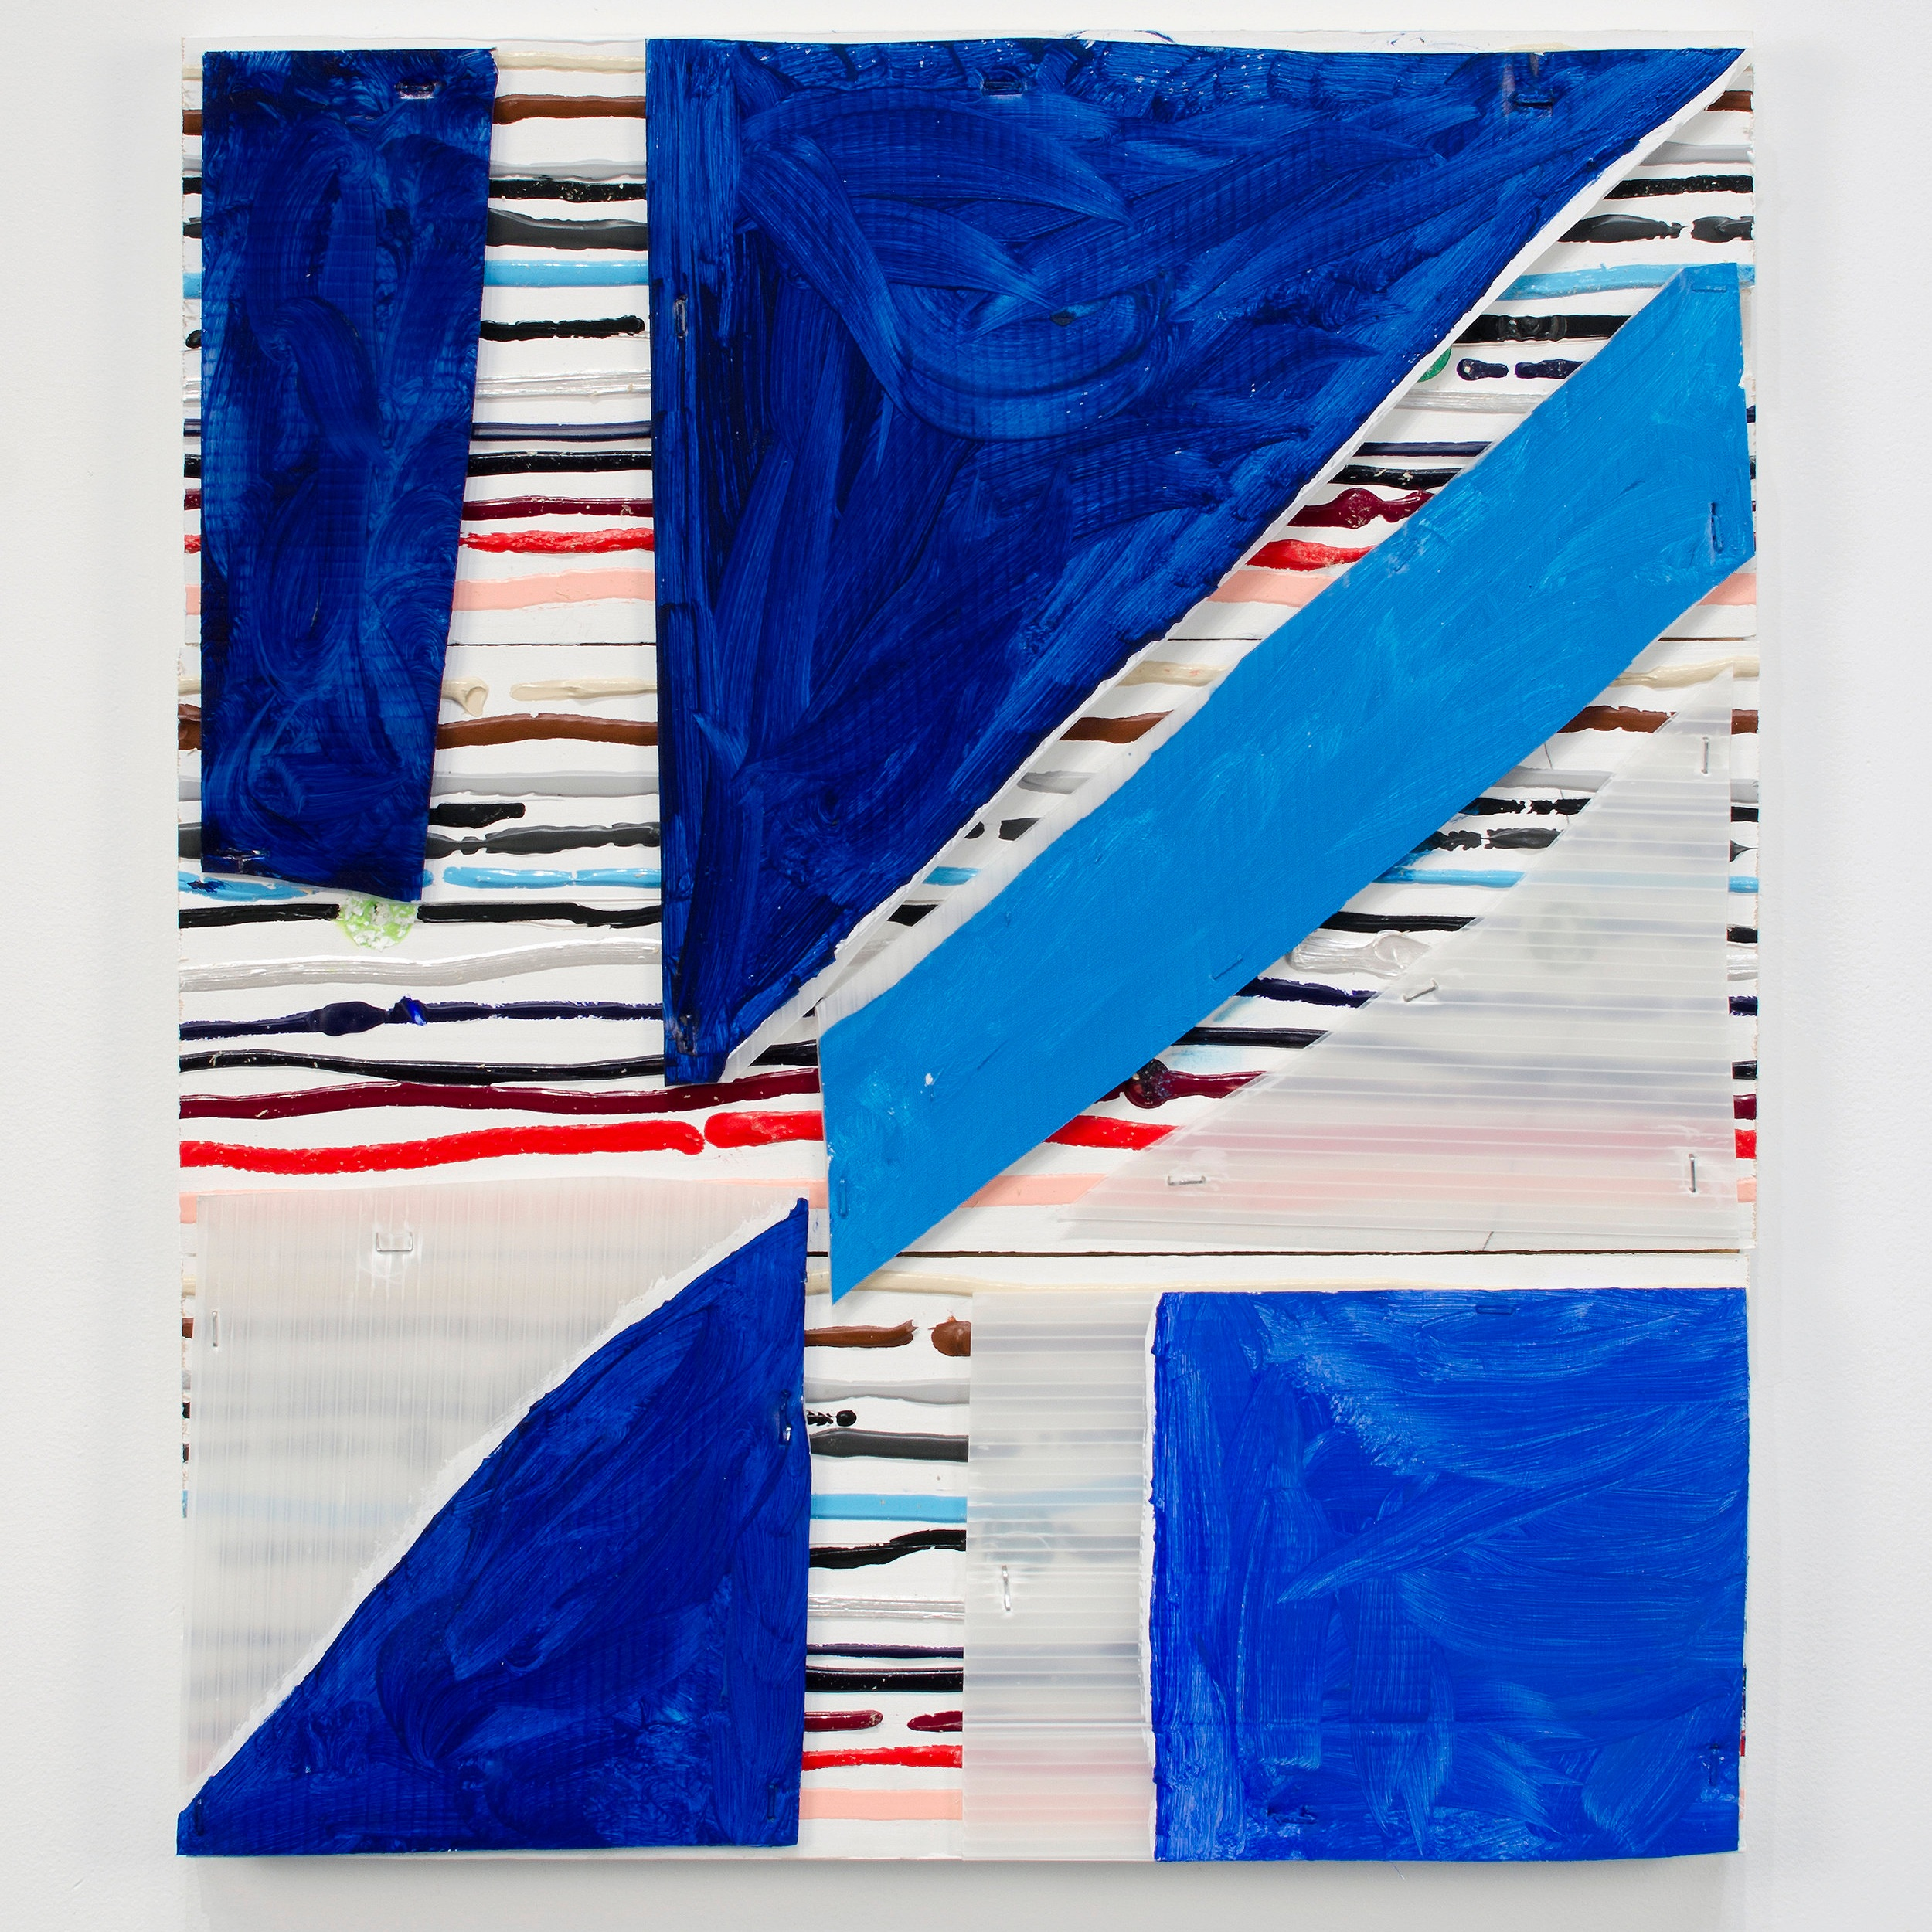 Blue Mask , 2016  Acrylic and Correx on wood  21 1/2 x 18 1/2 x 1 1/4 inches